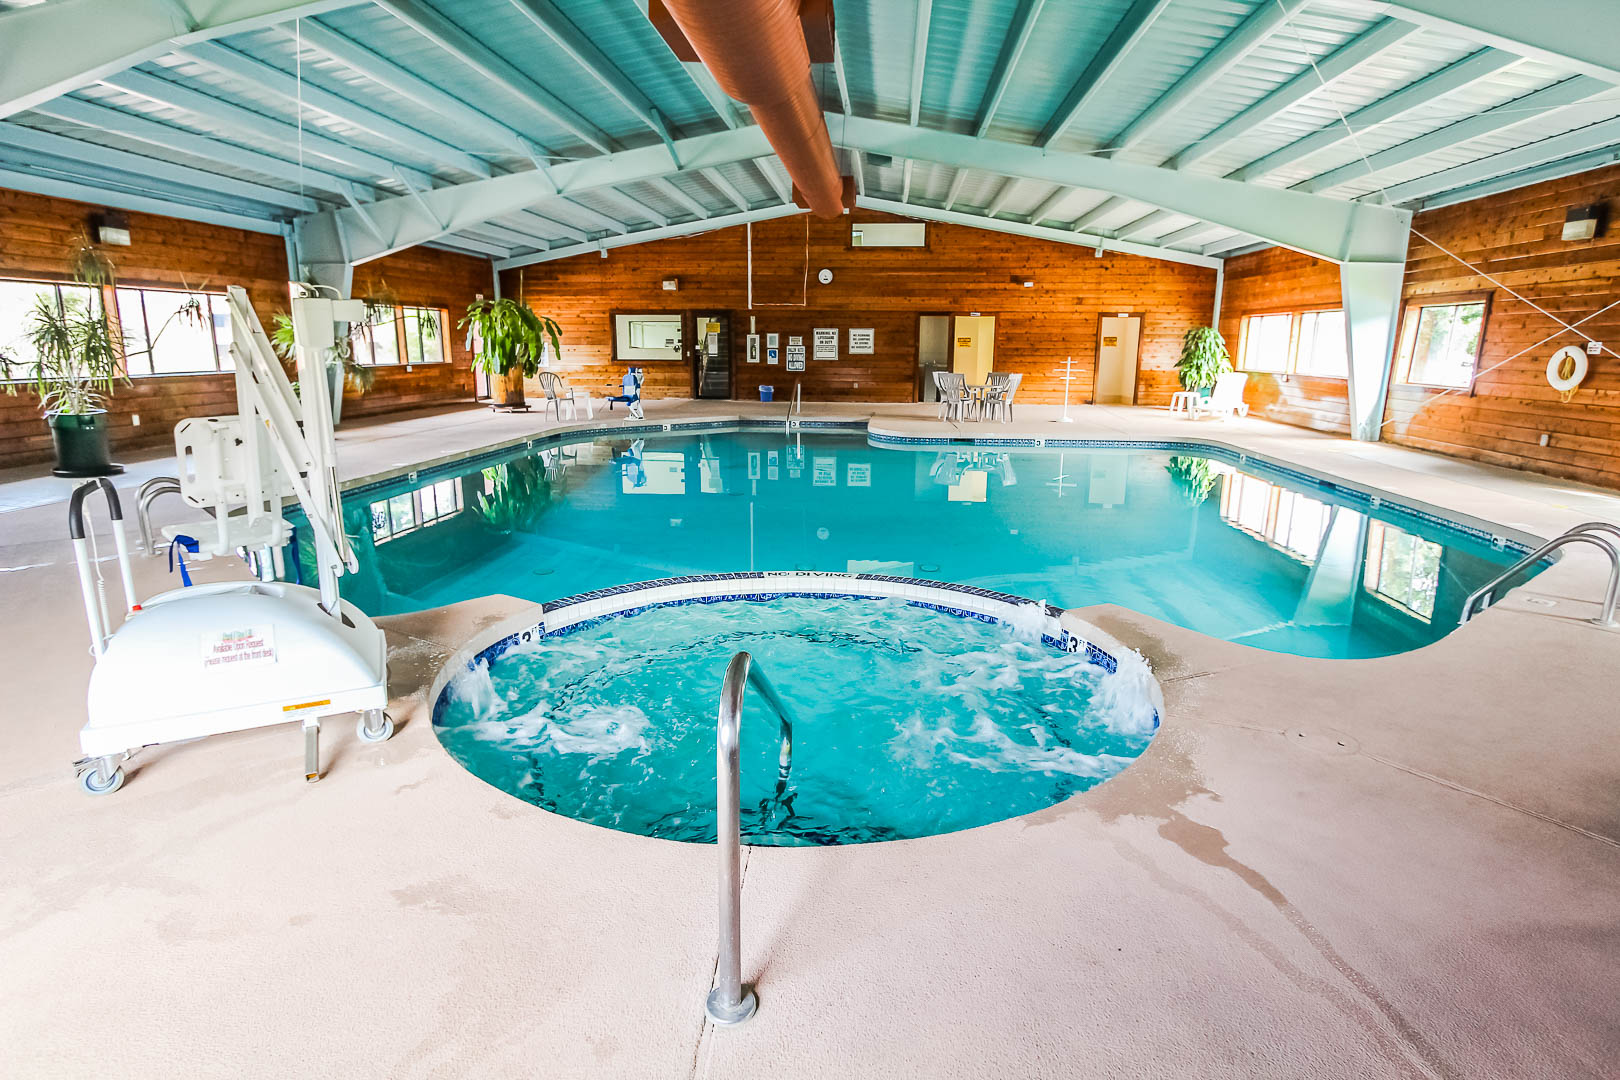 A spacious indoor swimming pool and Jacuzzi at VRI's Roundhouse Resort in Pinetop, Arizona.